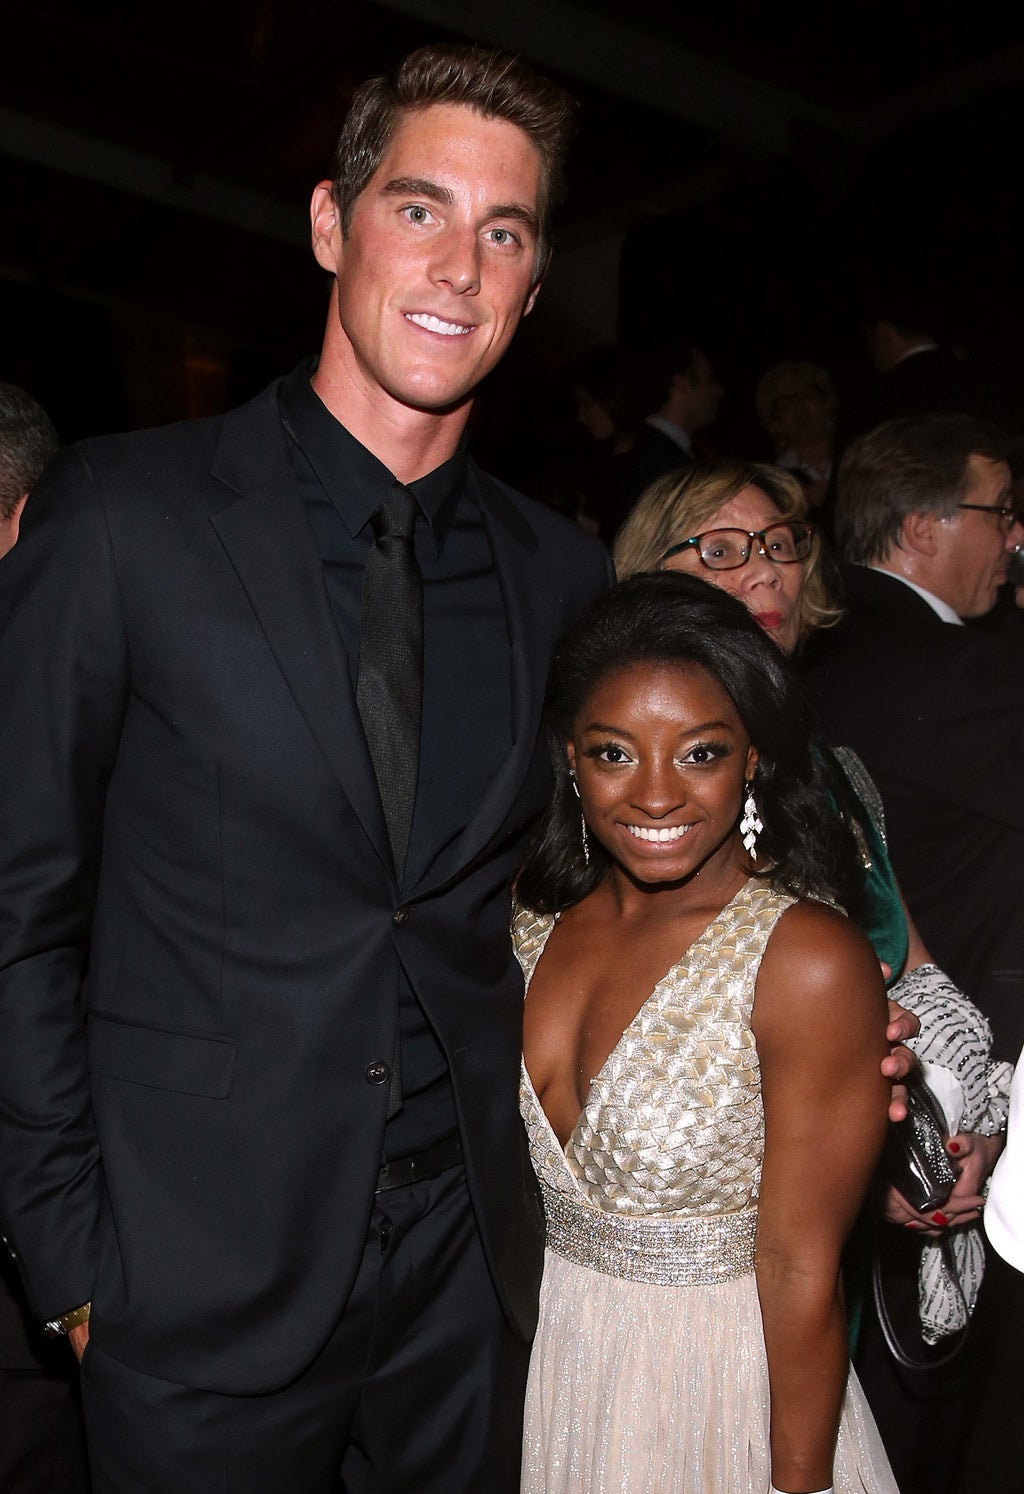 Conor Dwyer and Simone Biles